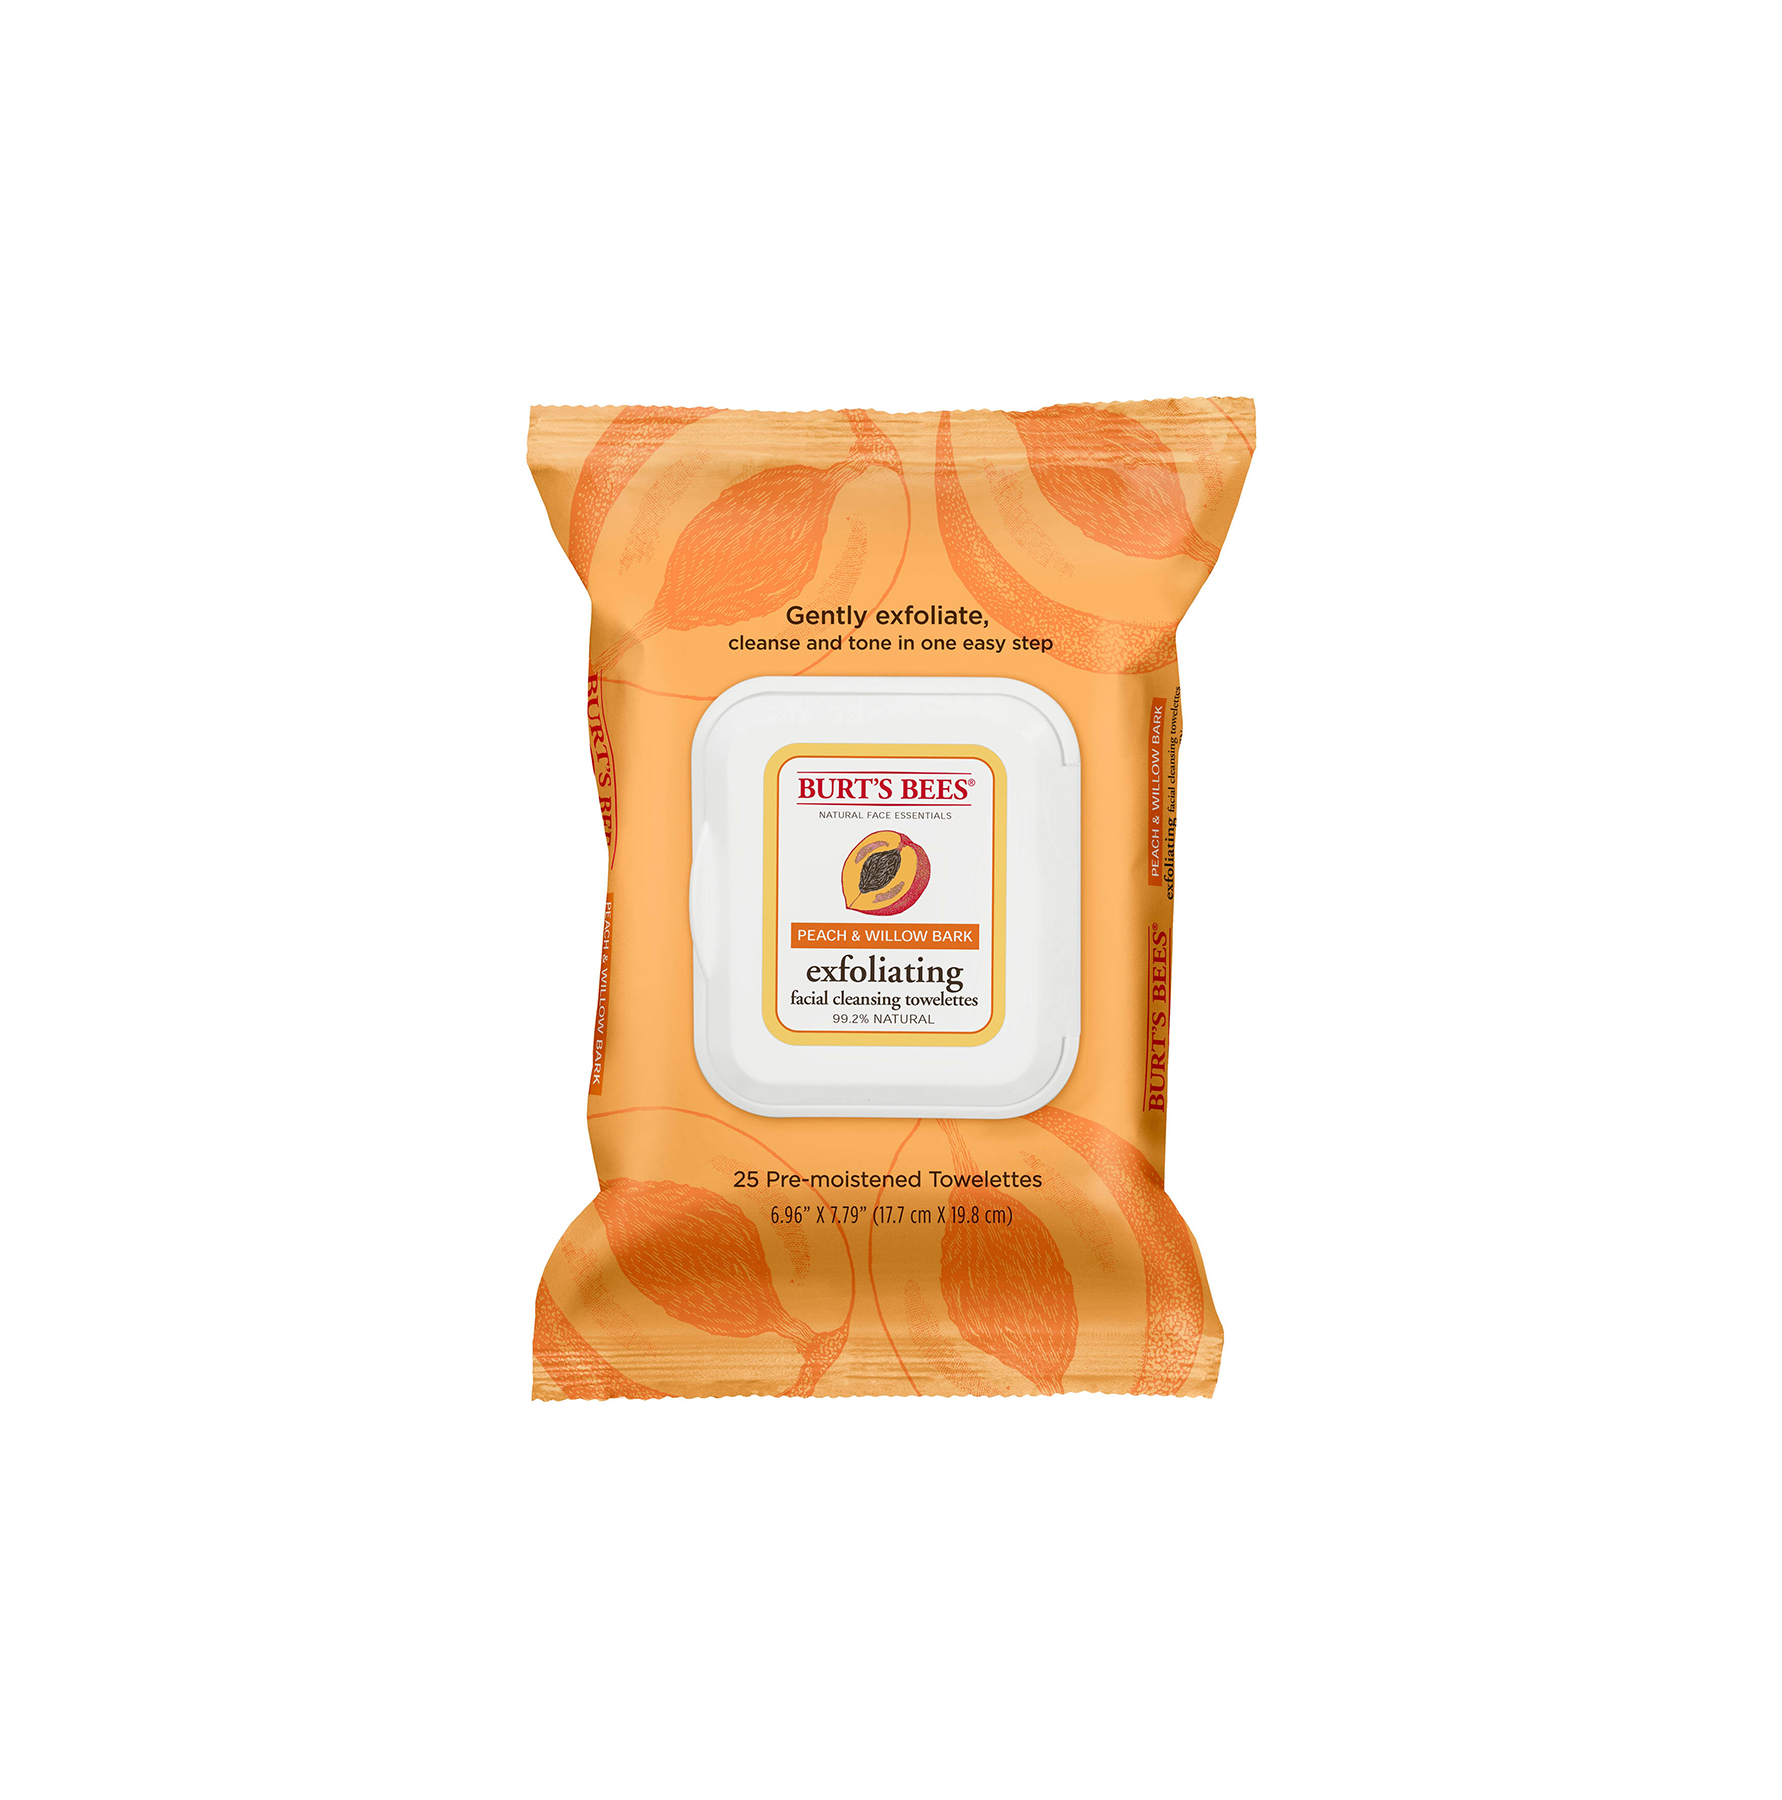 Burt's Bees Peach and Willow Bark Facial Cleansing Towelettes